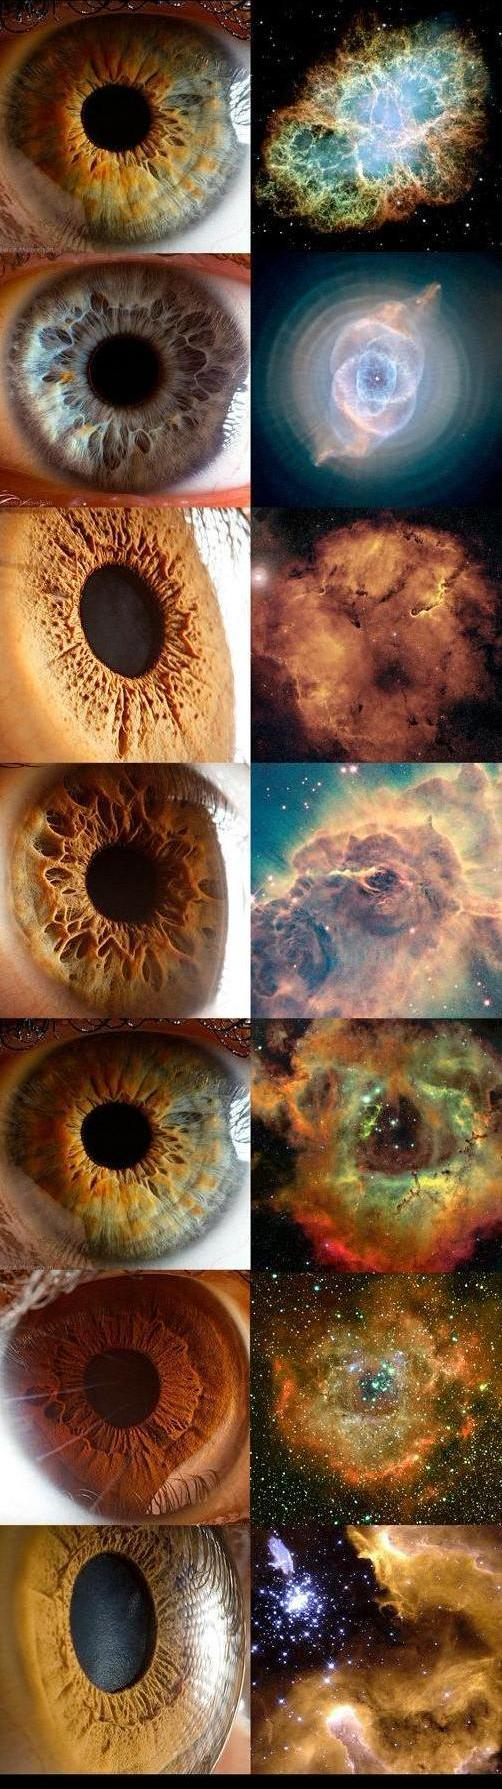 eyes-and-nebulas